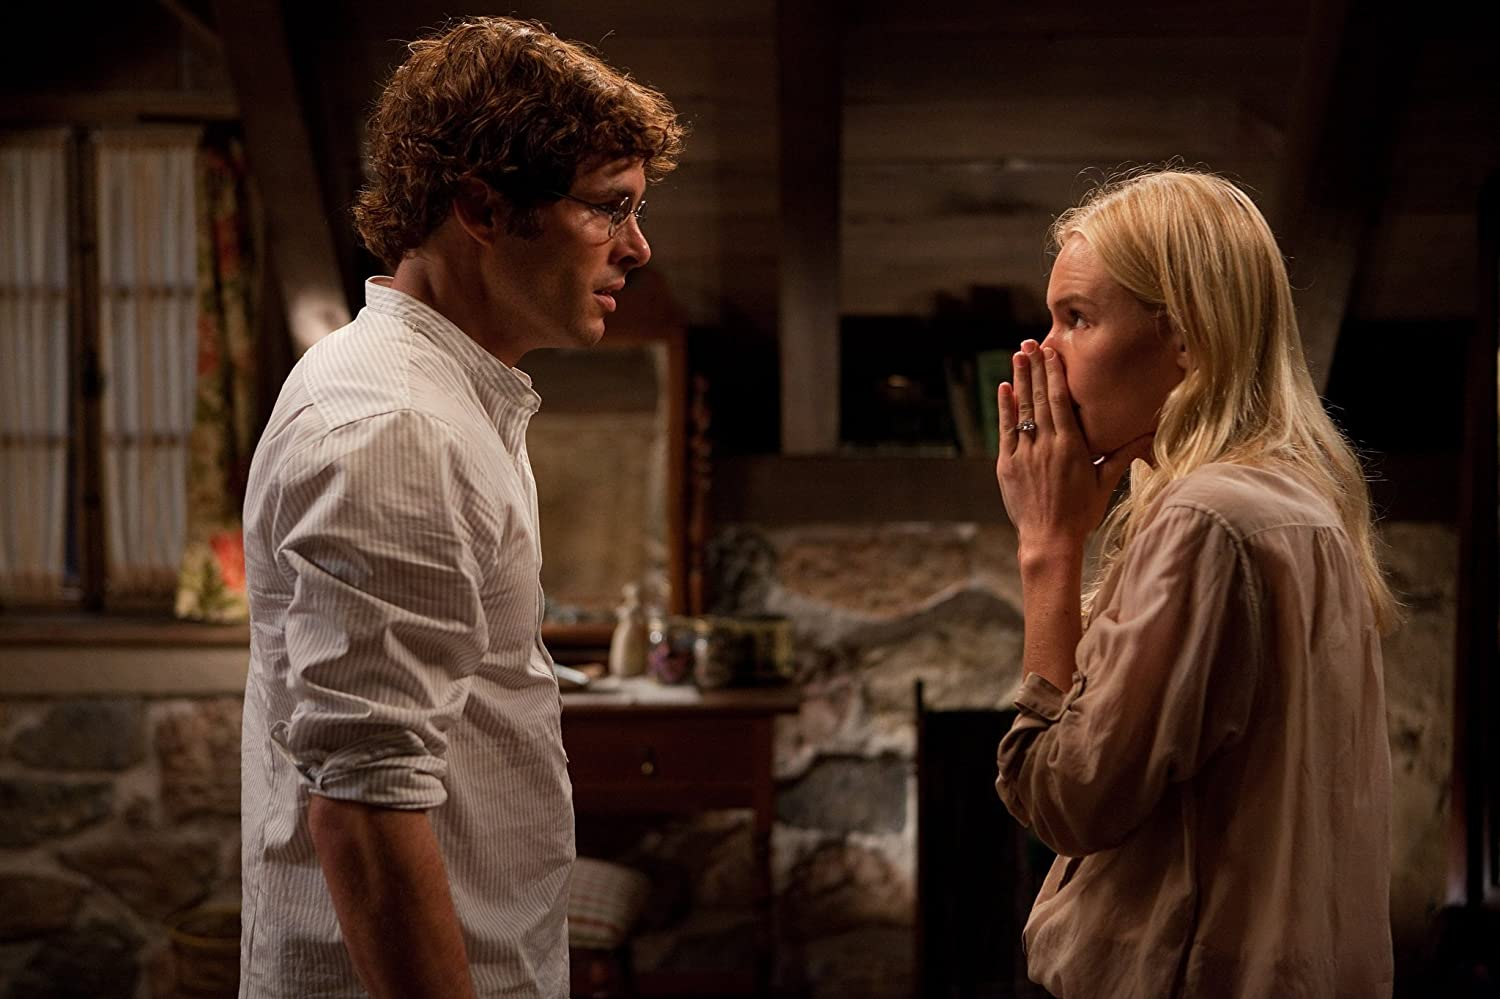 James Marsden and Kate Bosworth in Straw Dogs (2011)